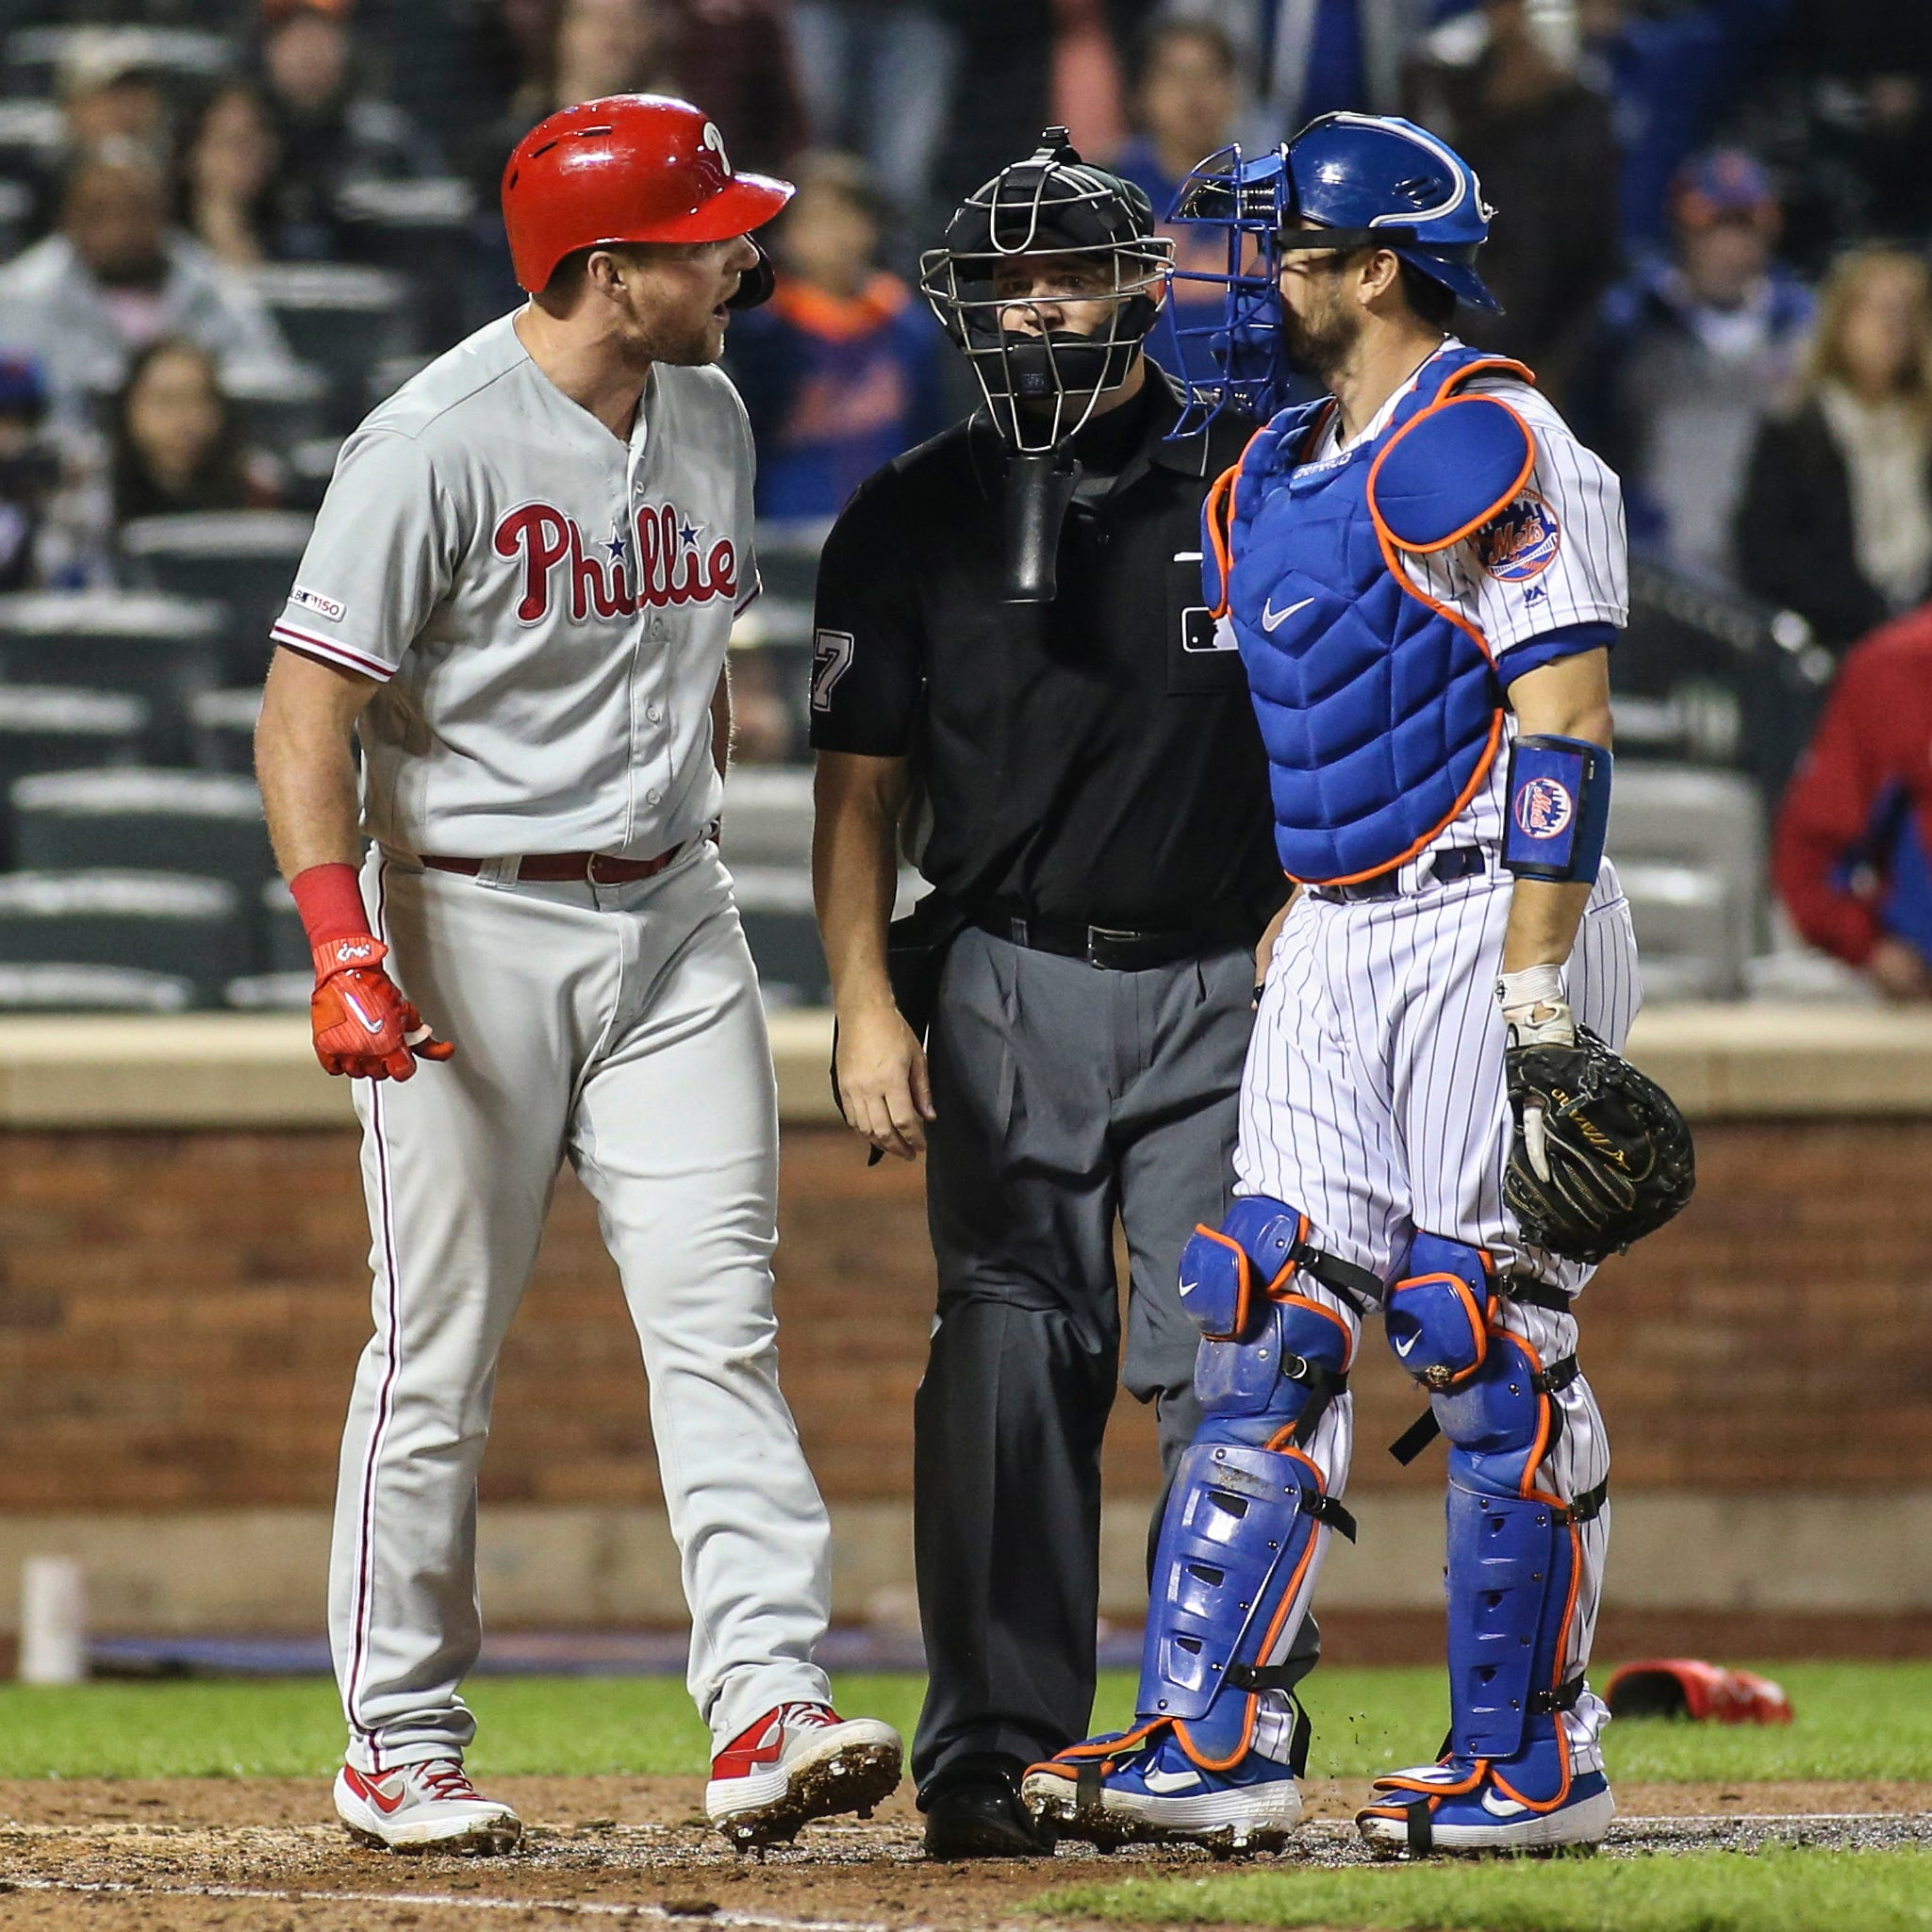 Mets not concerned with possible retaliation by Phillies